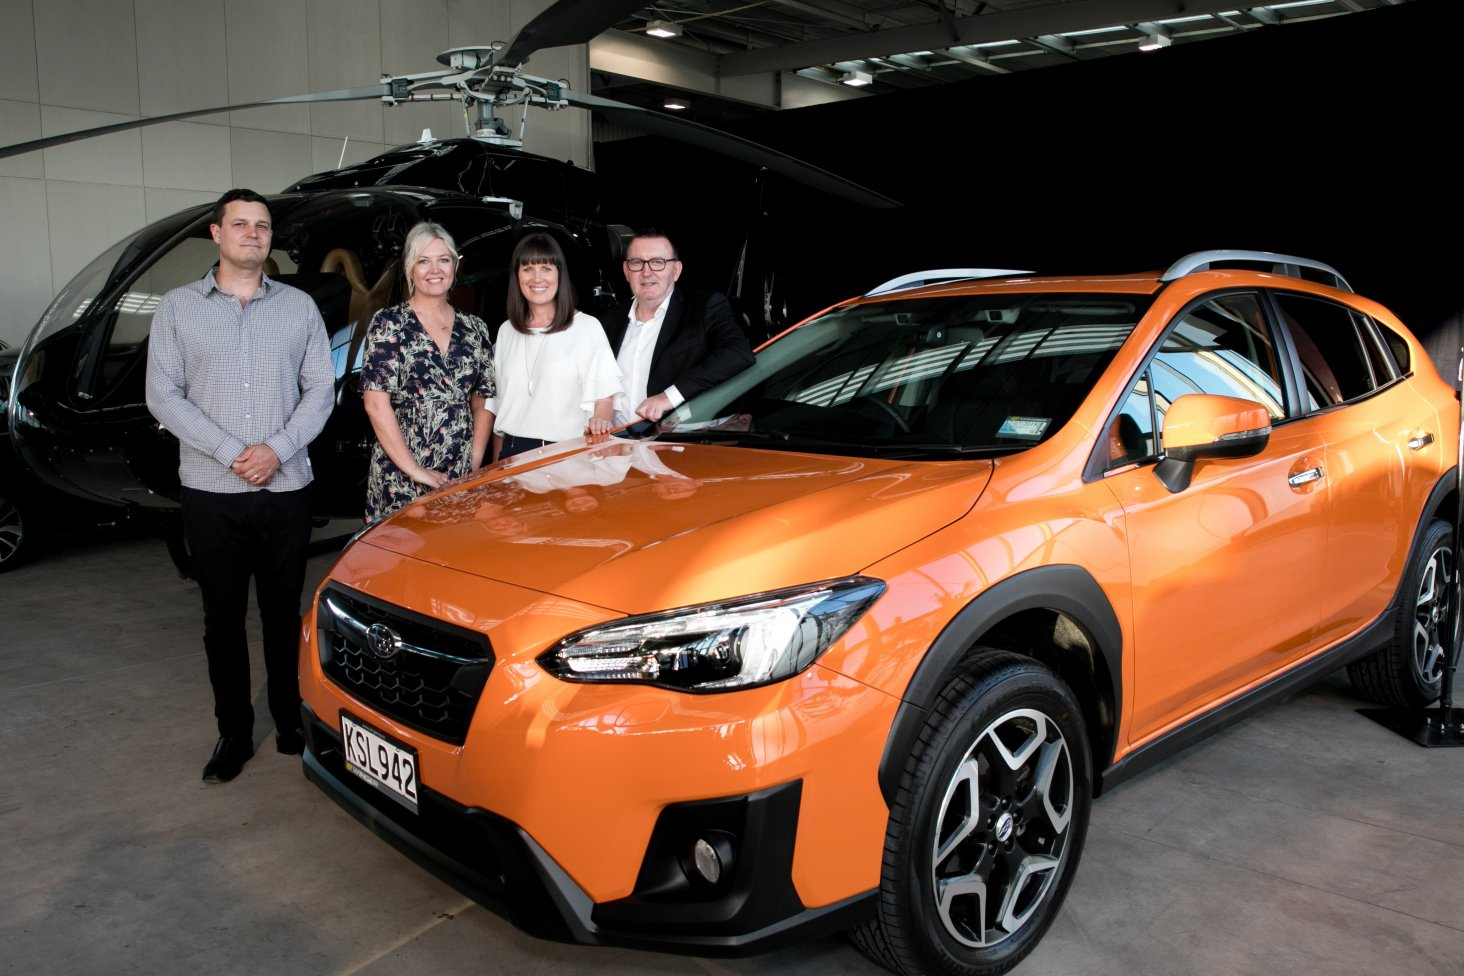 Pictured with the award-winning Subaru XV are (from left) NZ Autocar Editor Kyle Cassidy, AMI Community Engagement Manager Eve Whitwell, Subaru of NZ Marketing Manager Daile Stephens and Subaru of NZ Managing Director Wallis Dumper. PHOTO: CARMEN BIRD.